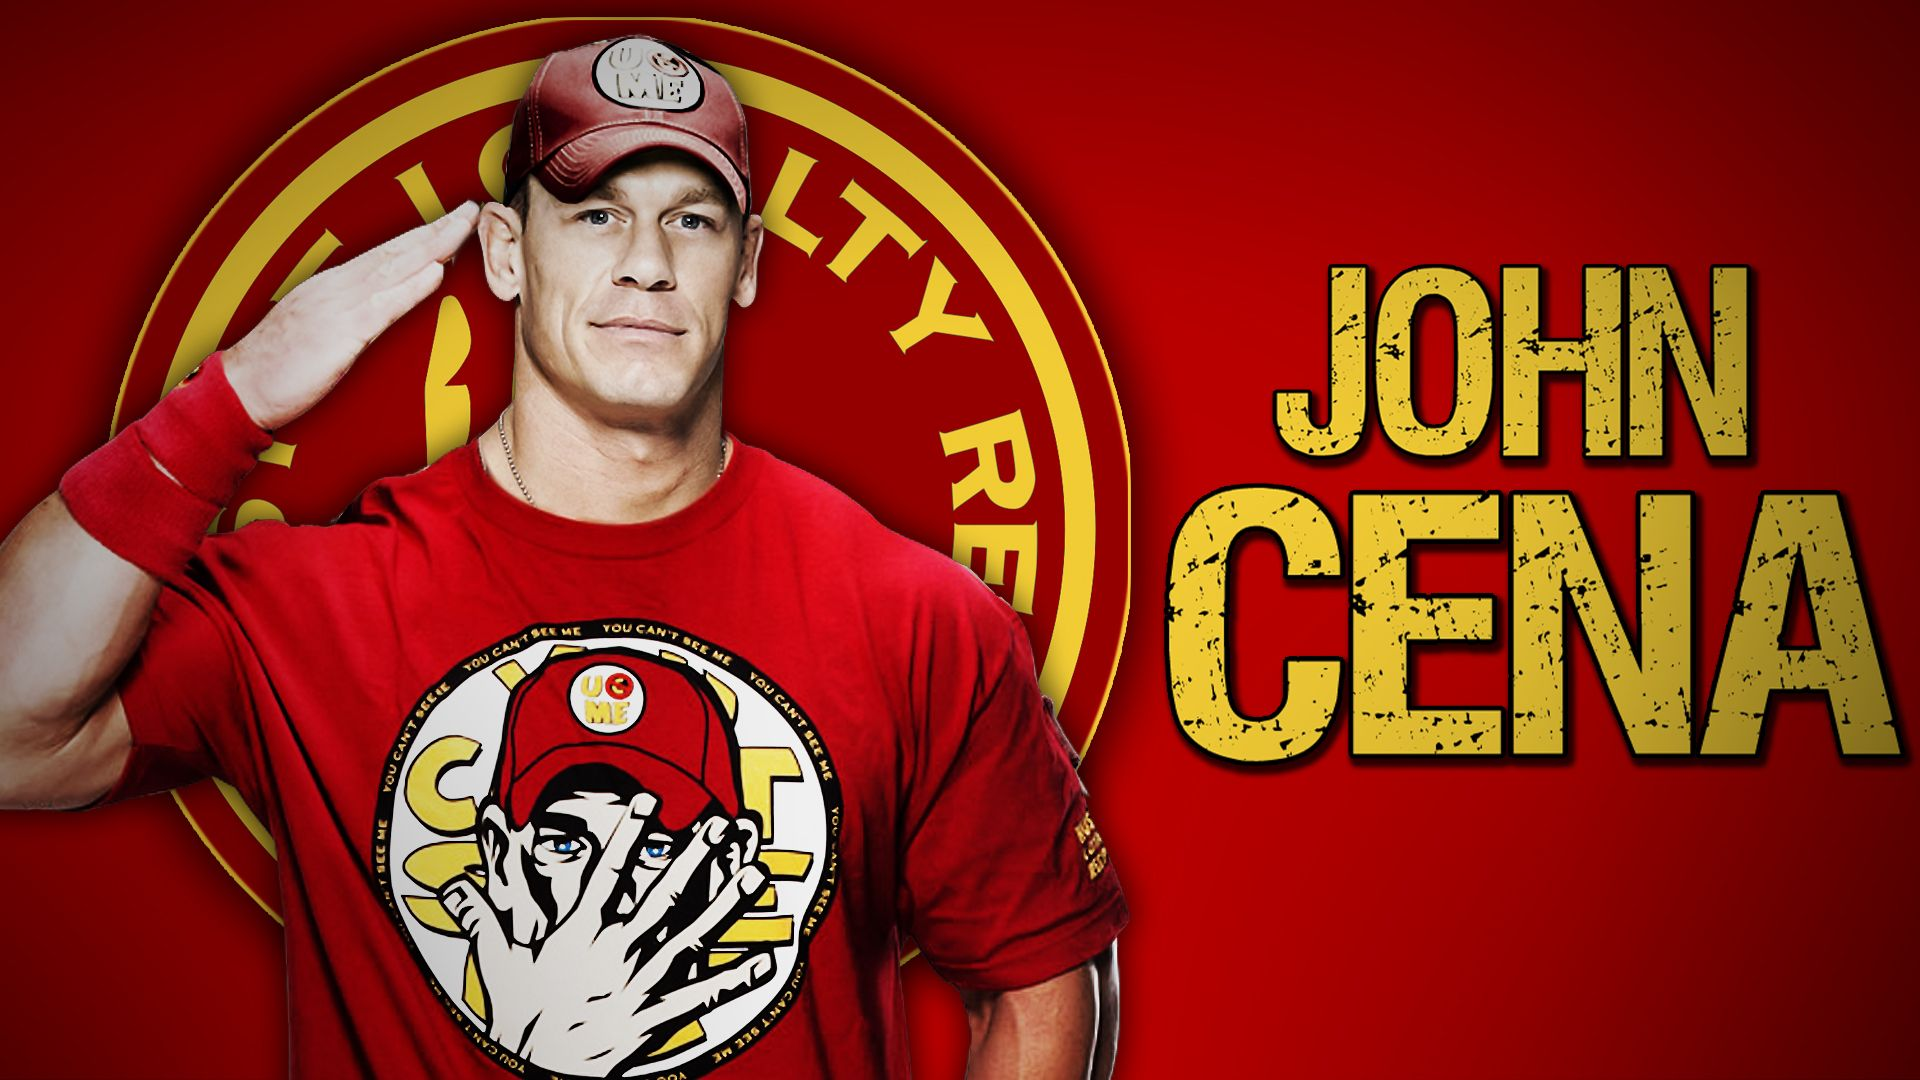 WWE STARS WALLPAPERS Download WWE STARS WALLPAPERS . Android